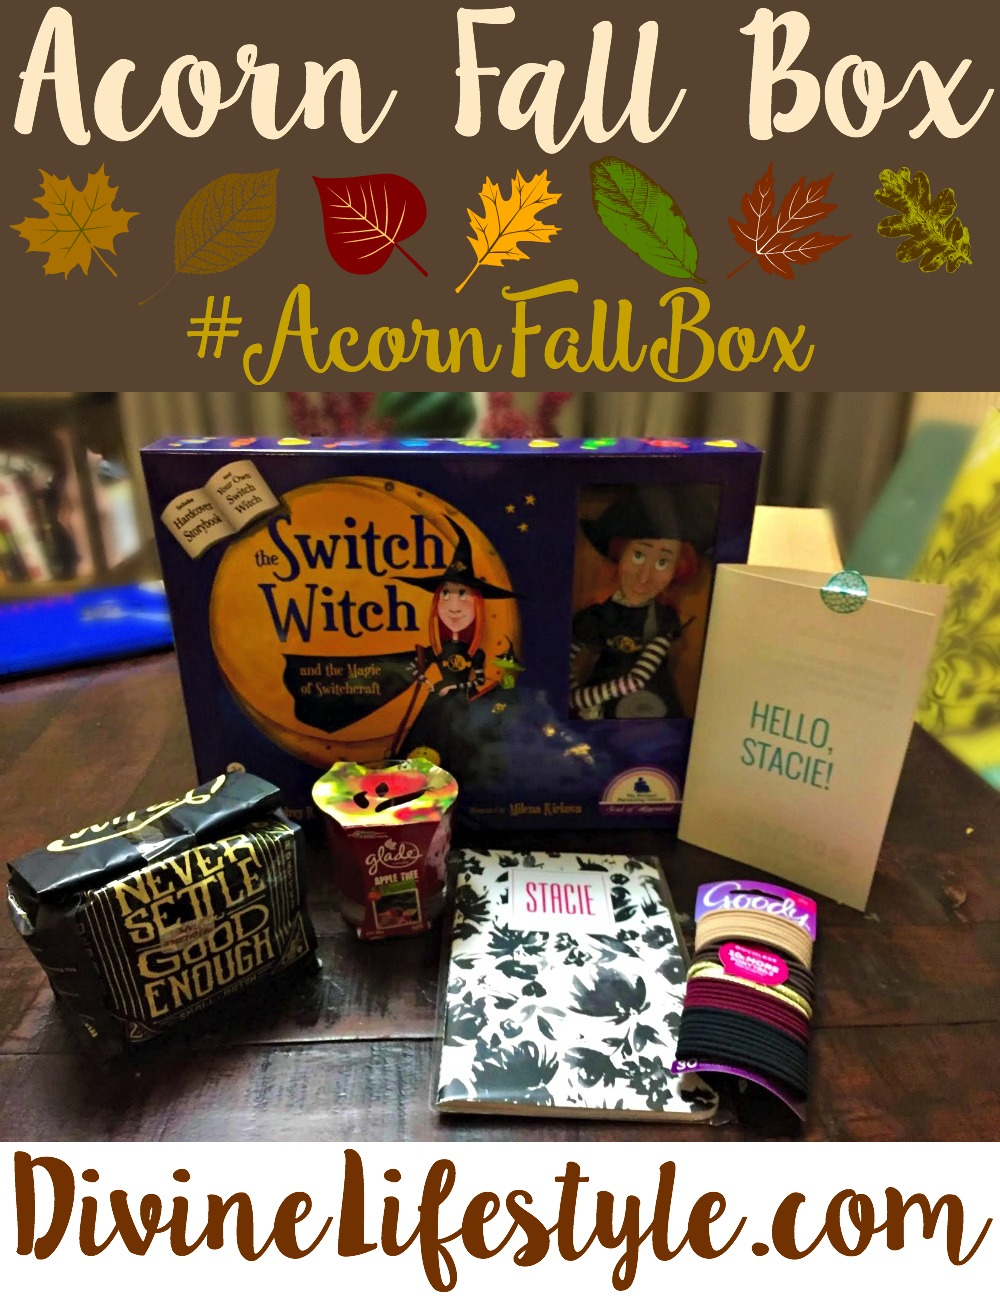 Acorn Fall Box #AcornFallBox